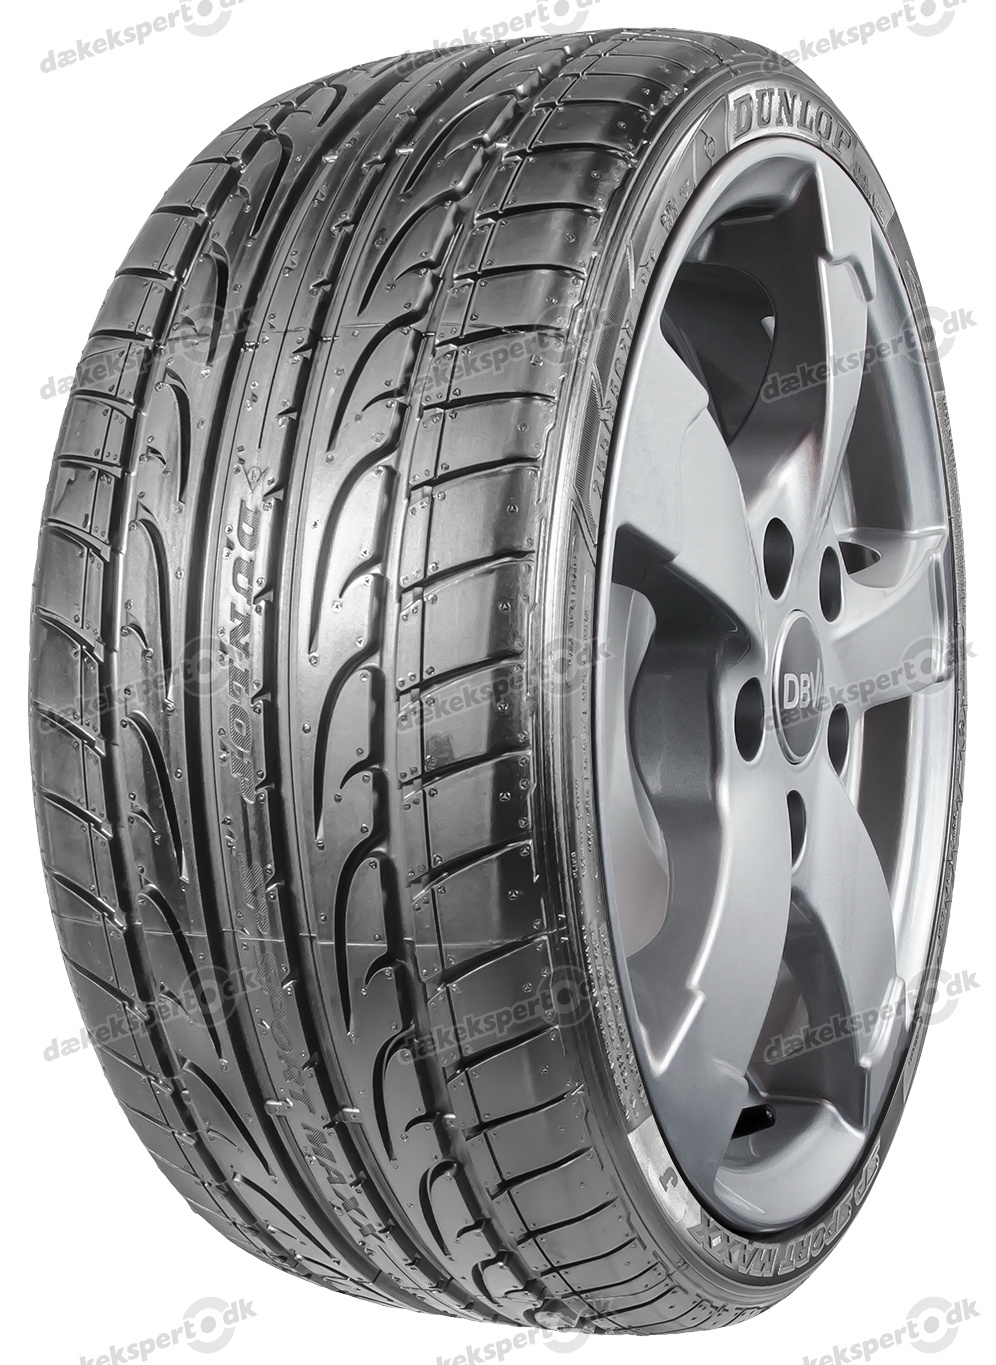 275/35 ZR19 (100Y) SP Sport Maxx XL  SP Sport Maxx XL